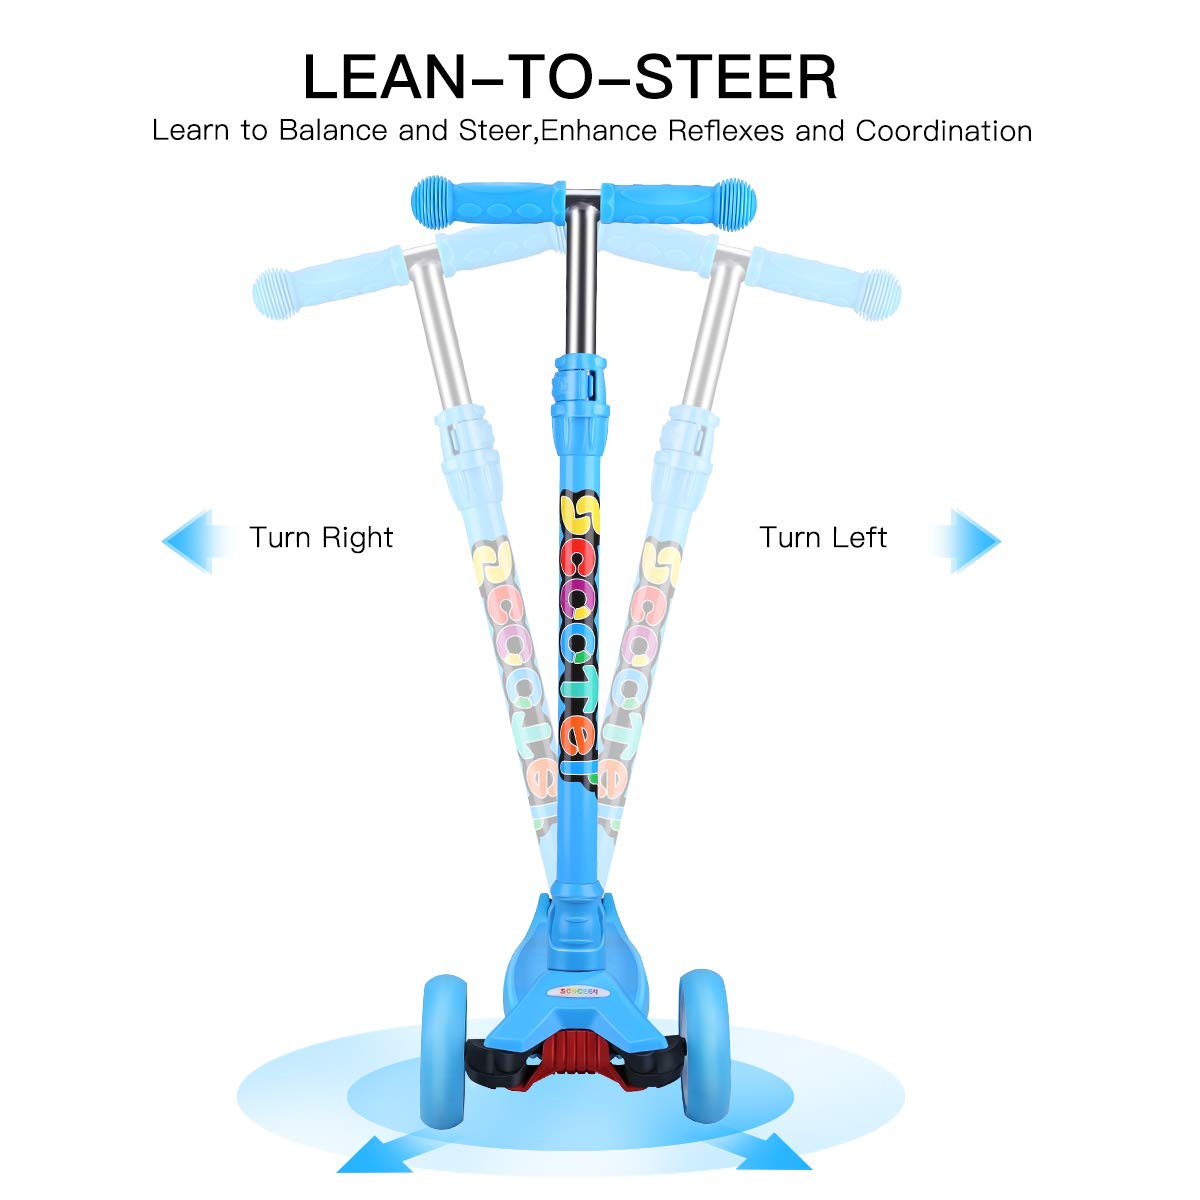 Amazon.com : OUTON Kick Scooter for Kids 3 Wheel Lean to ...